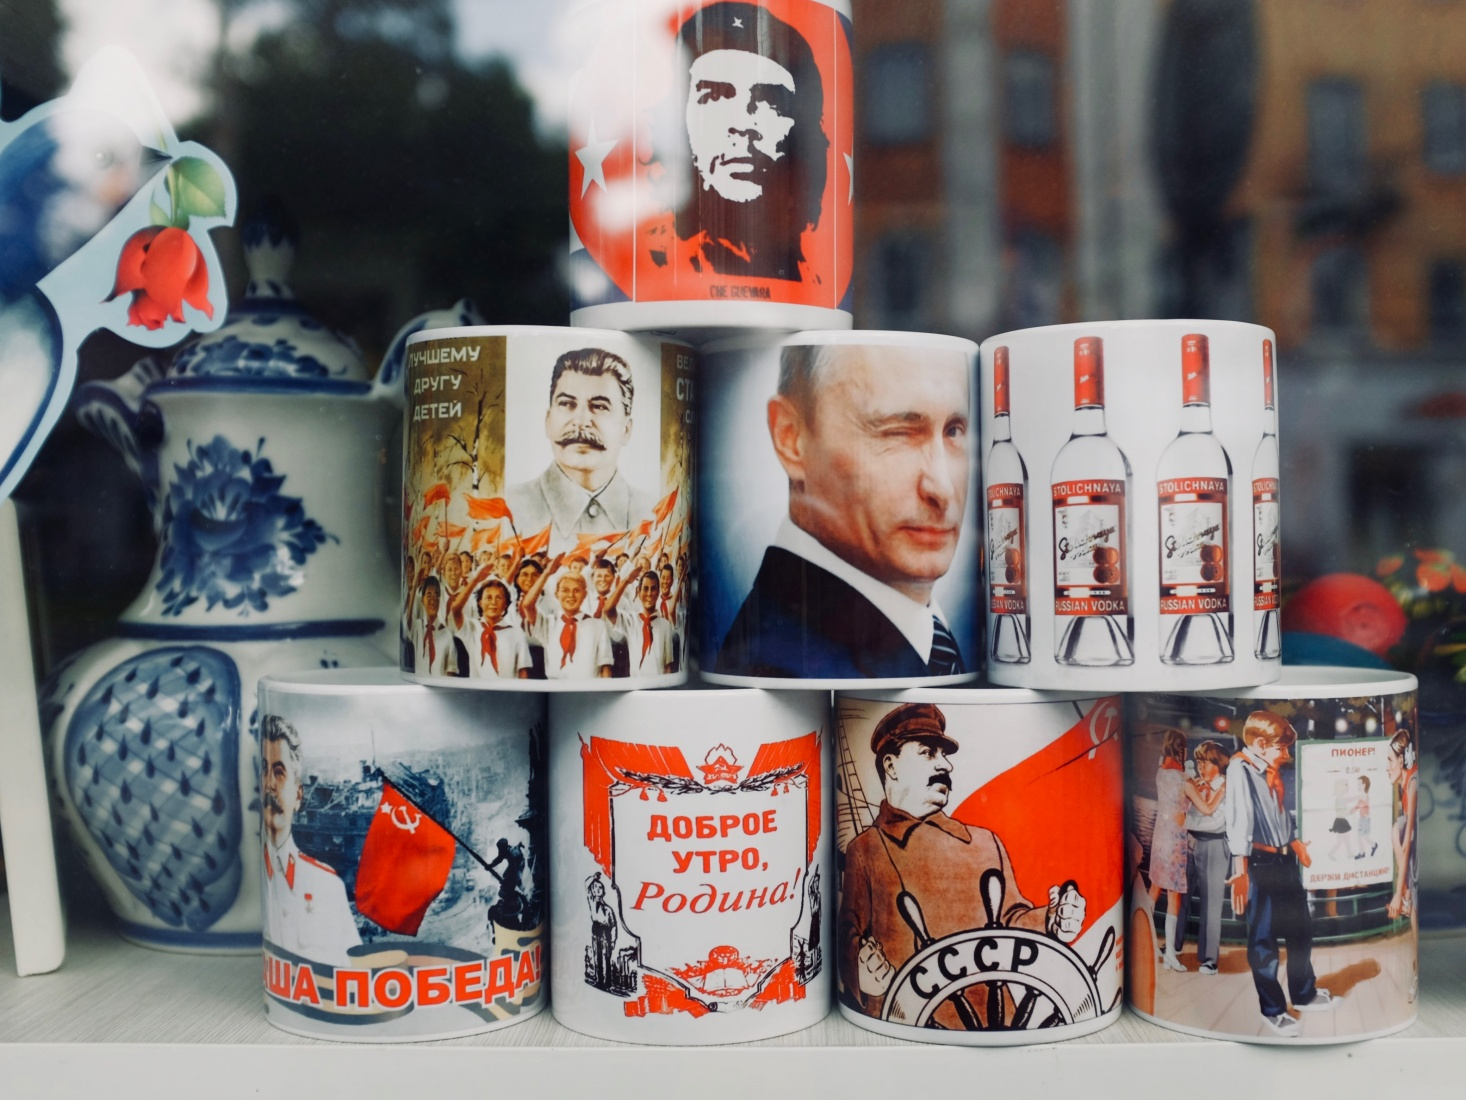 Souvenir mugs in Kaliningrad, Russia, featuring Stalin, Vladimir Putin, Che Guevara, and others.